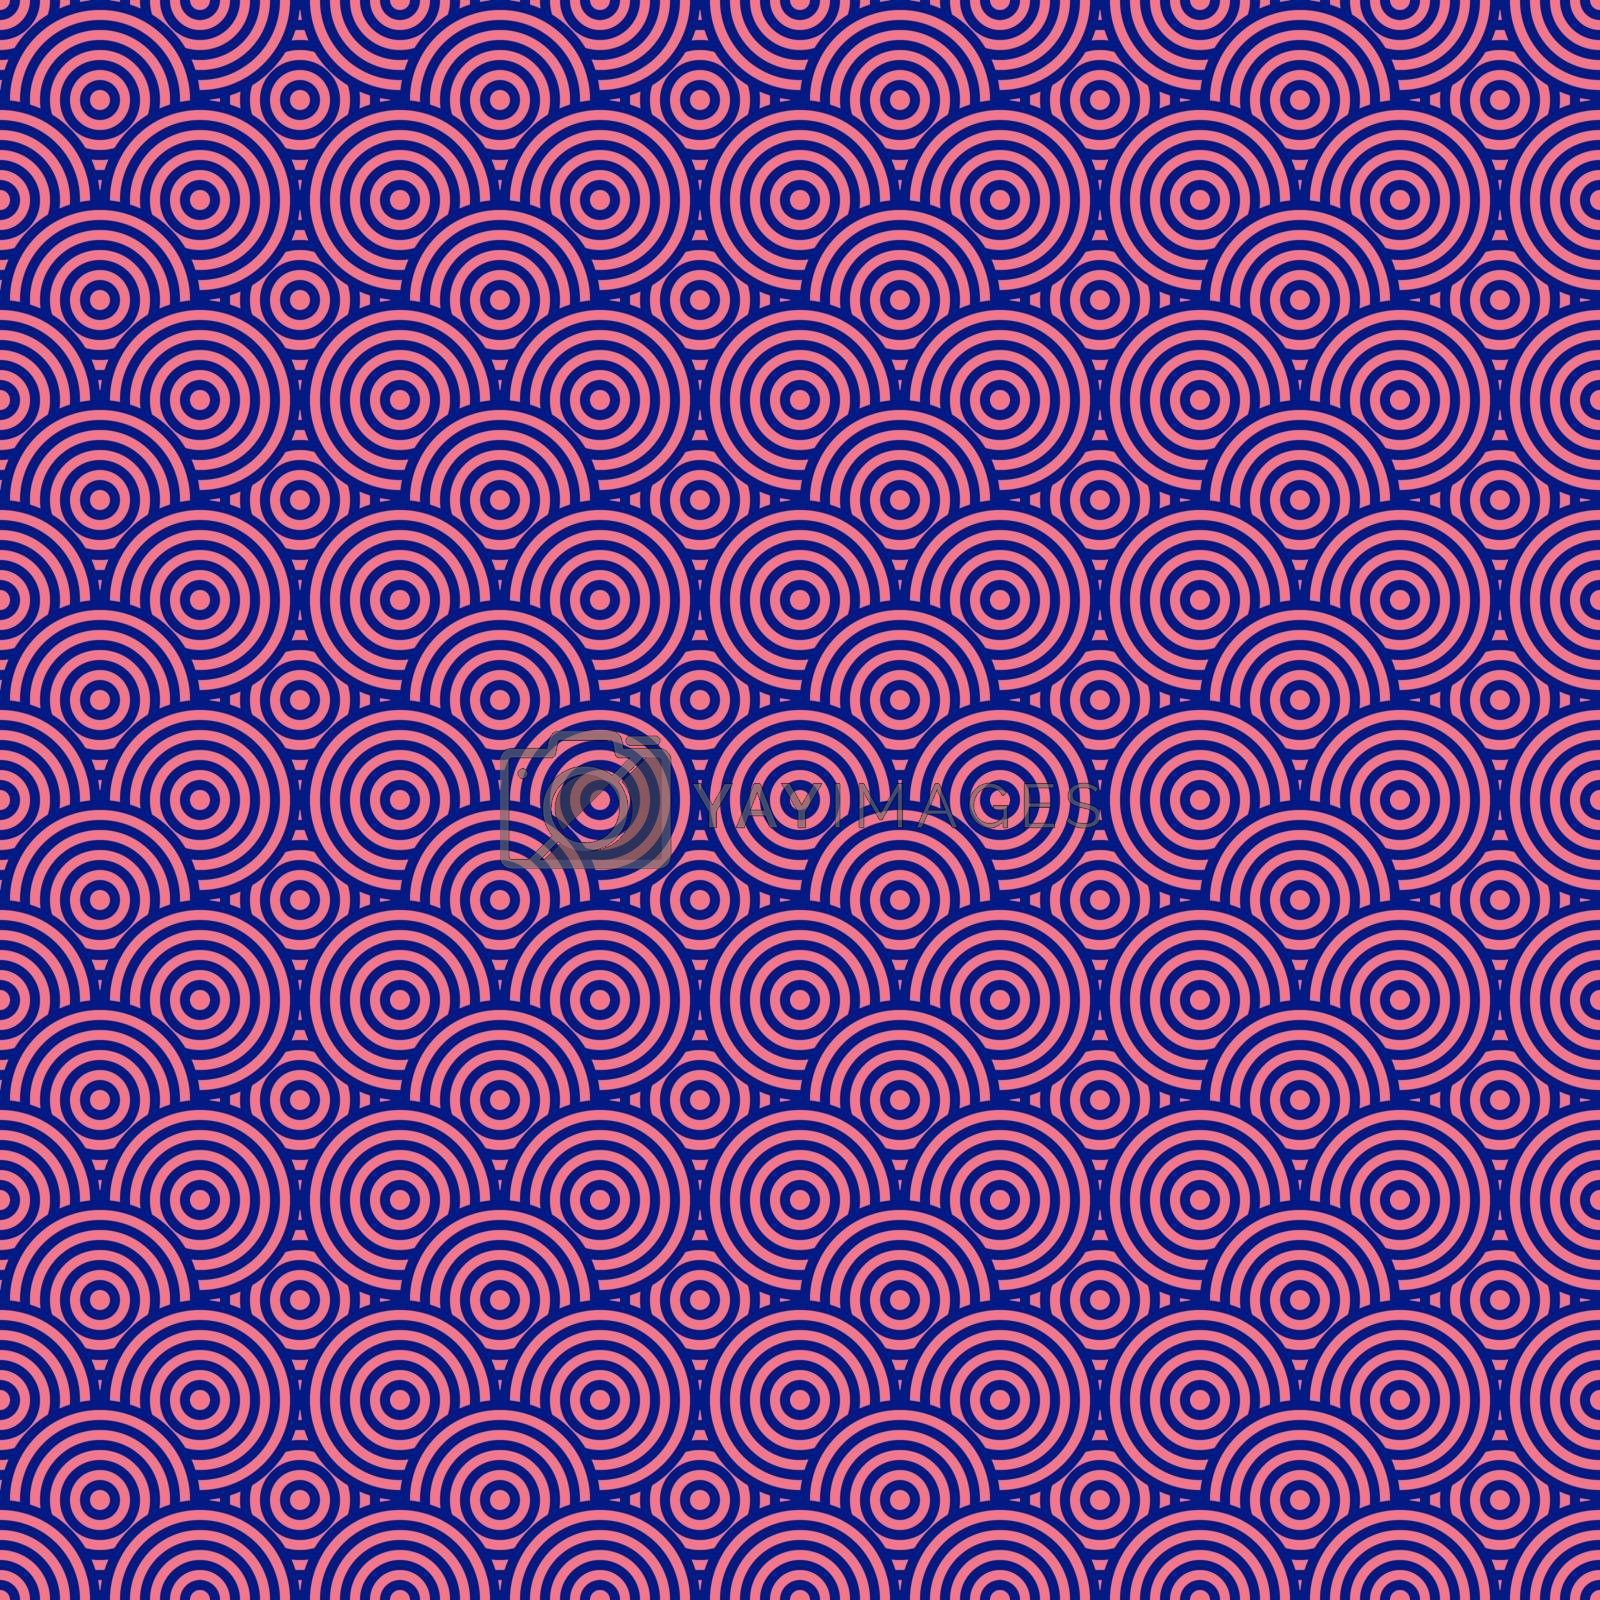 Pink and blue circles seamless pattern background and texture. Vector illustration